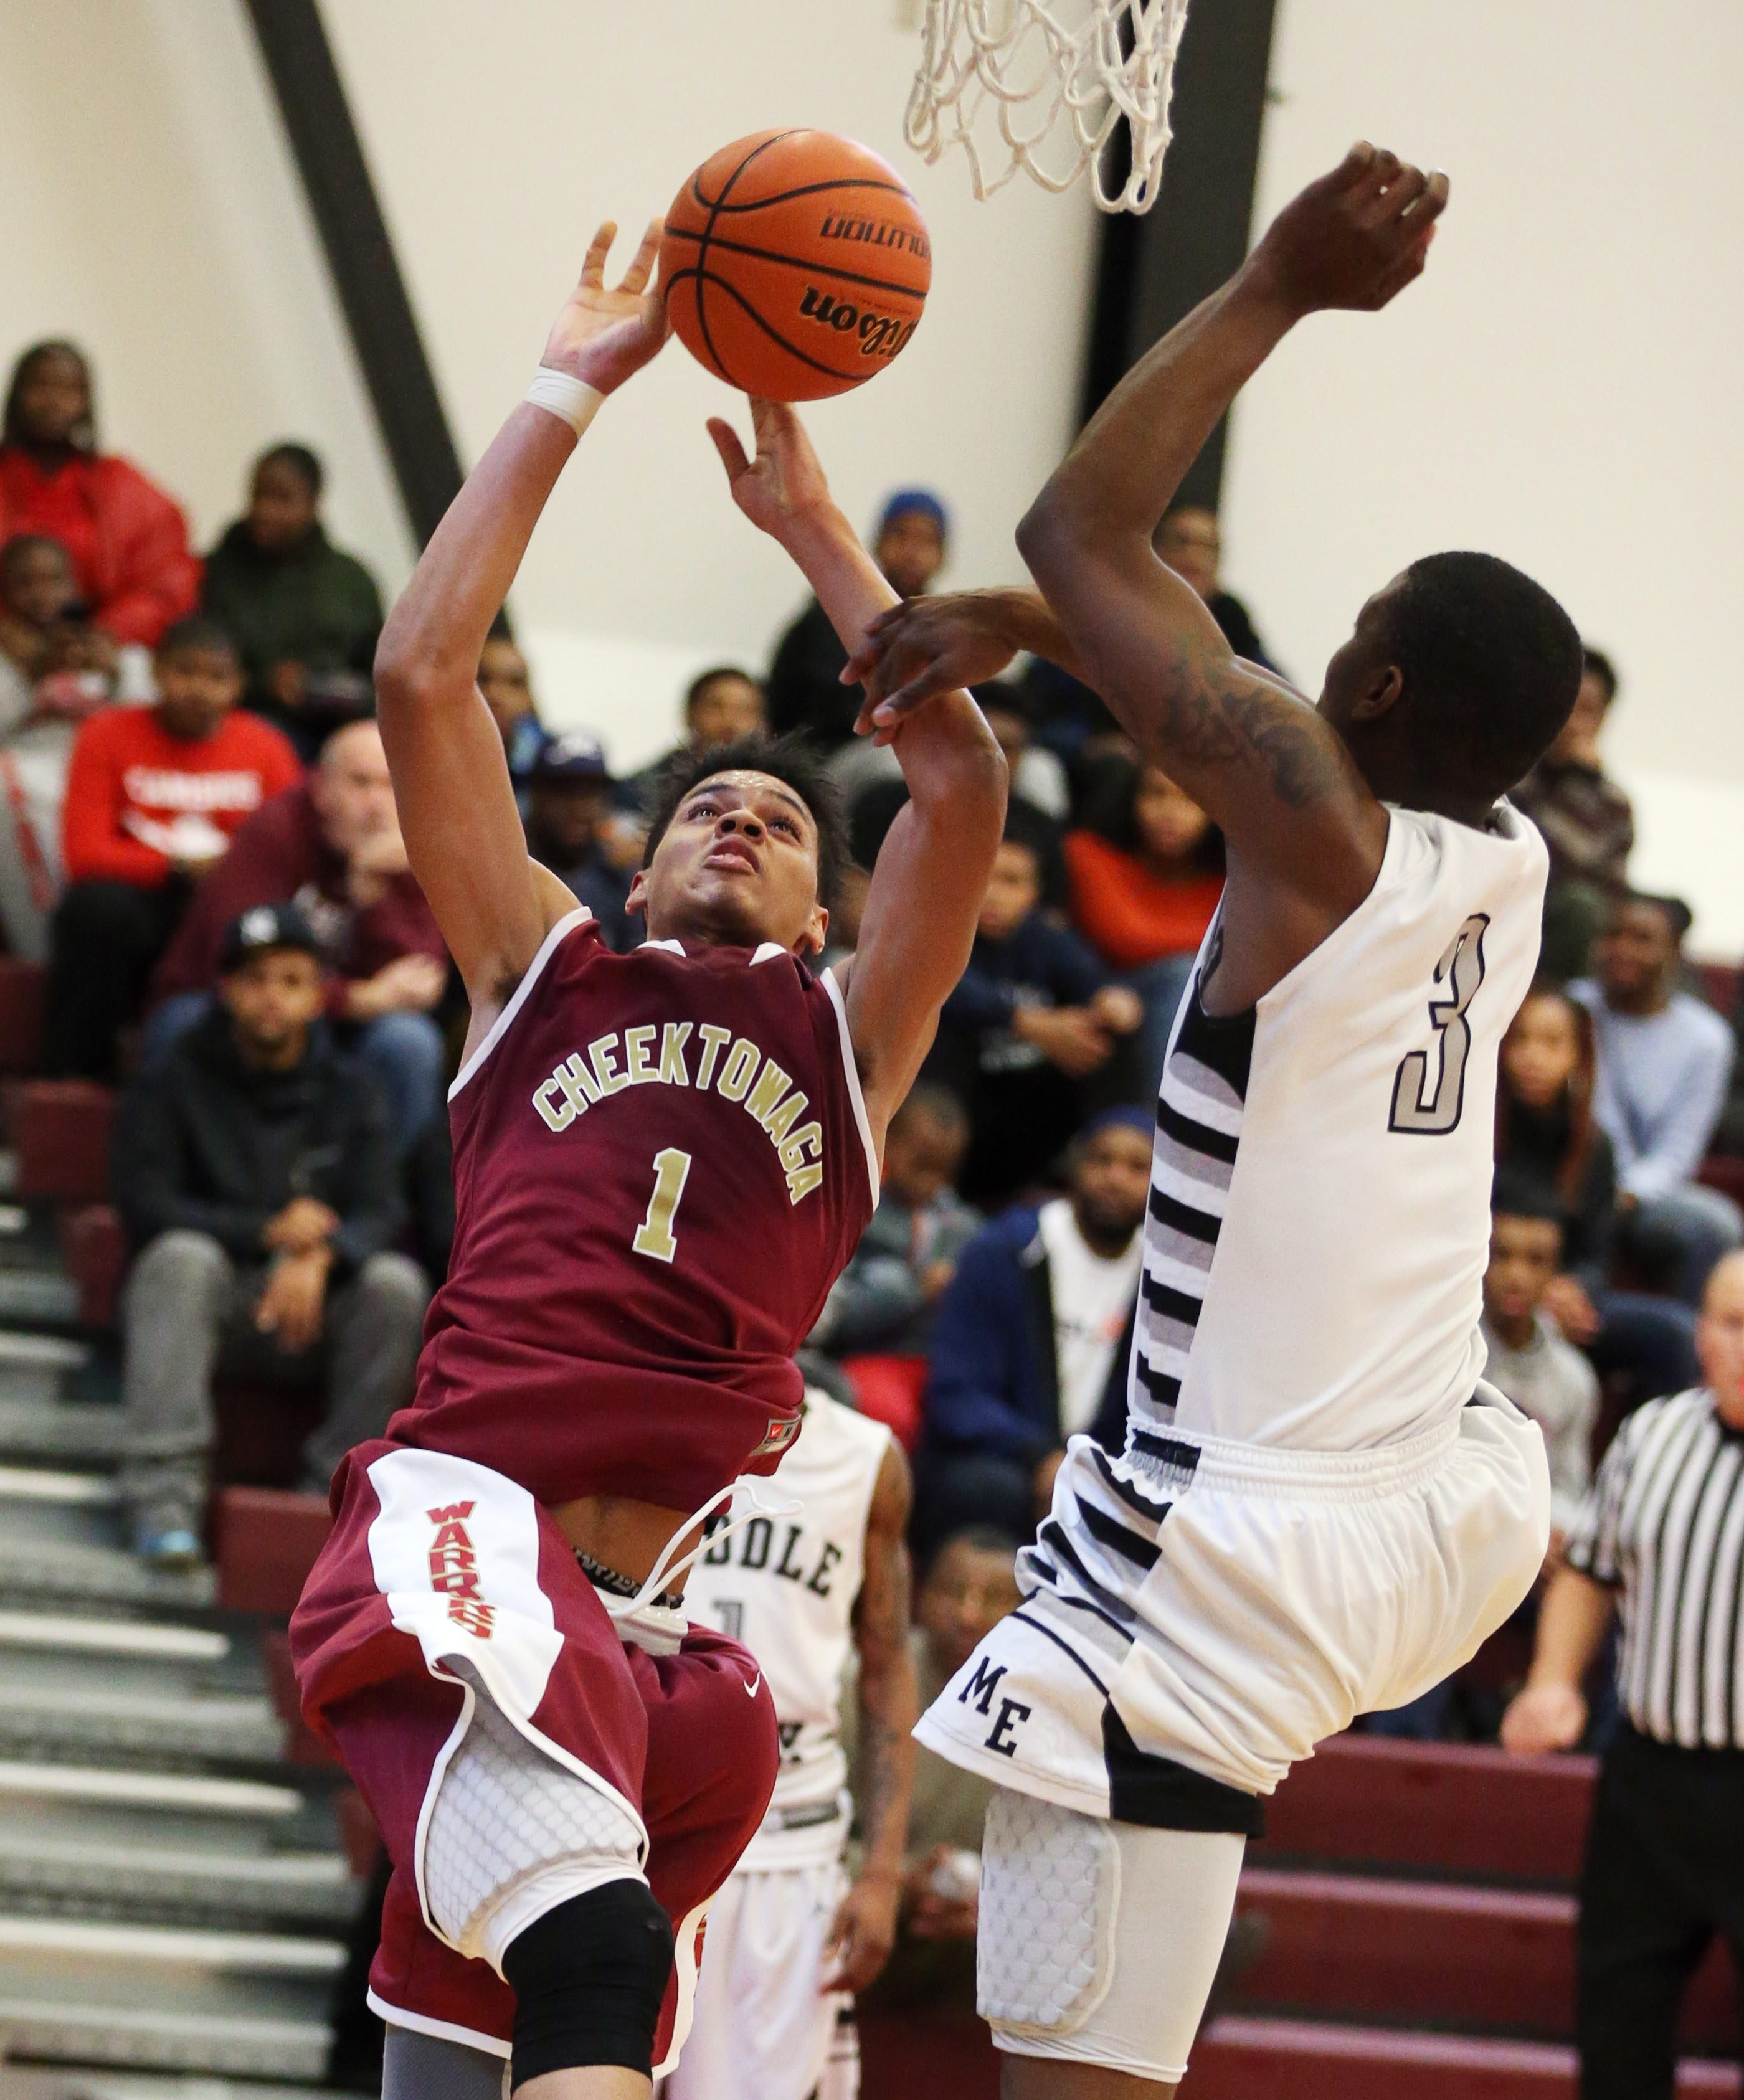 Cheektowaga's Dominick Welch will be a key factor when the Warriors play their crosstown rival Maryvale Friday in the Section VI Class A-2 quarterfinals.